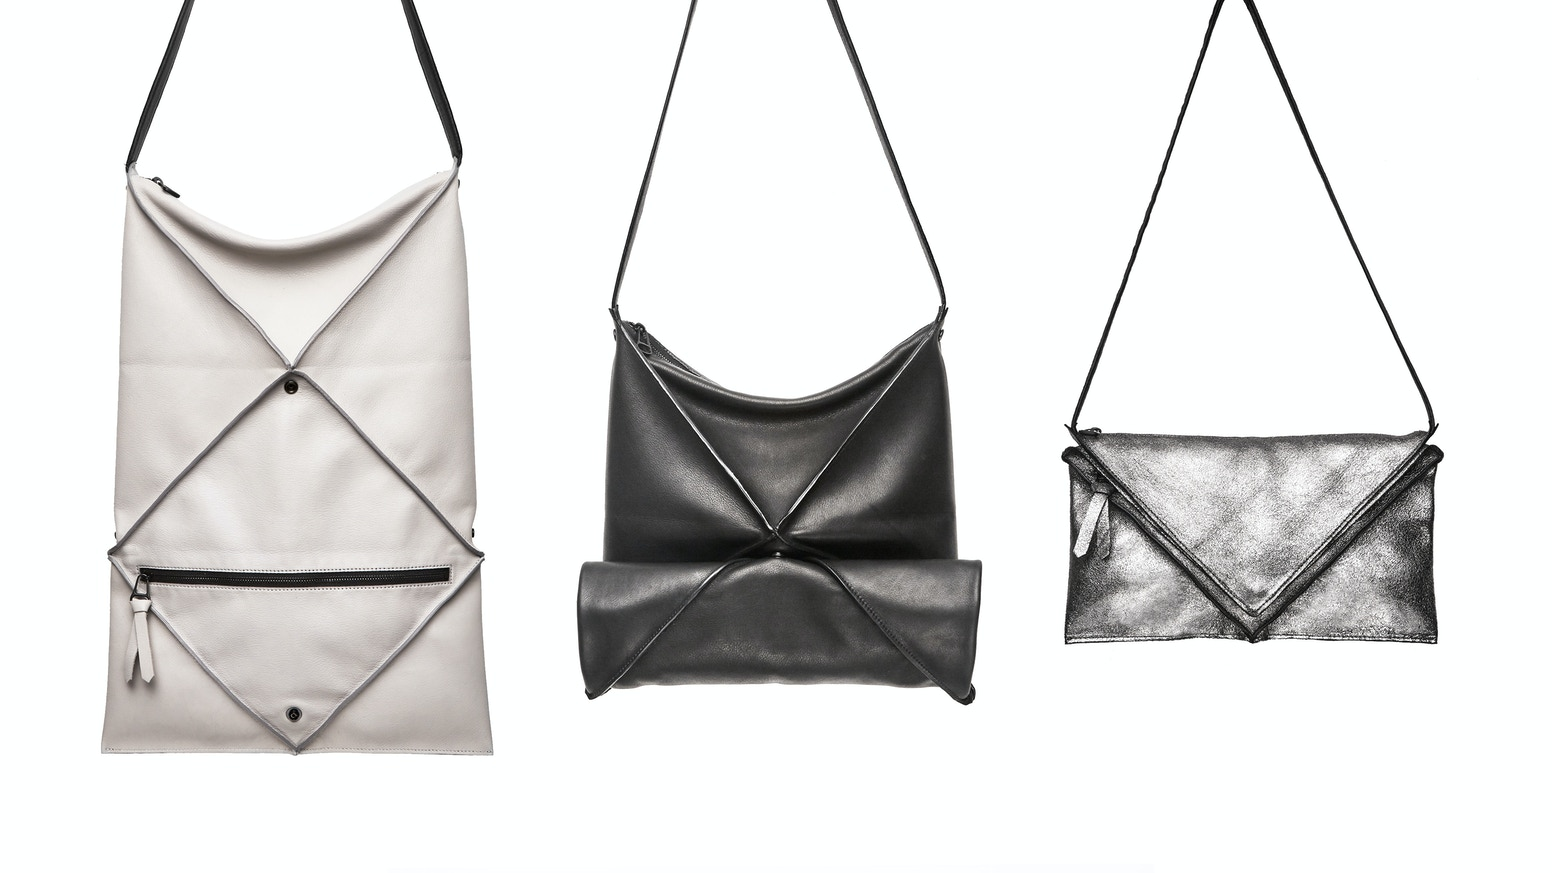 A Leather Bag That Transforms Into Three Functional Shapes According To Your Needs